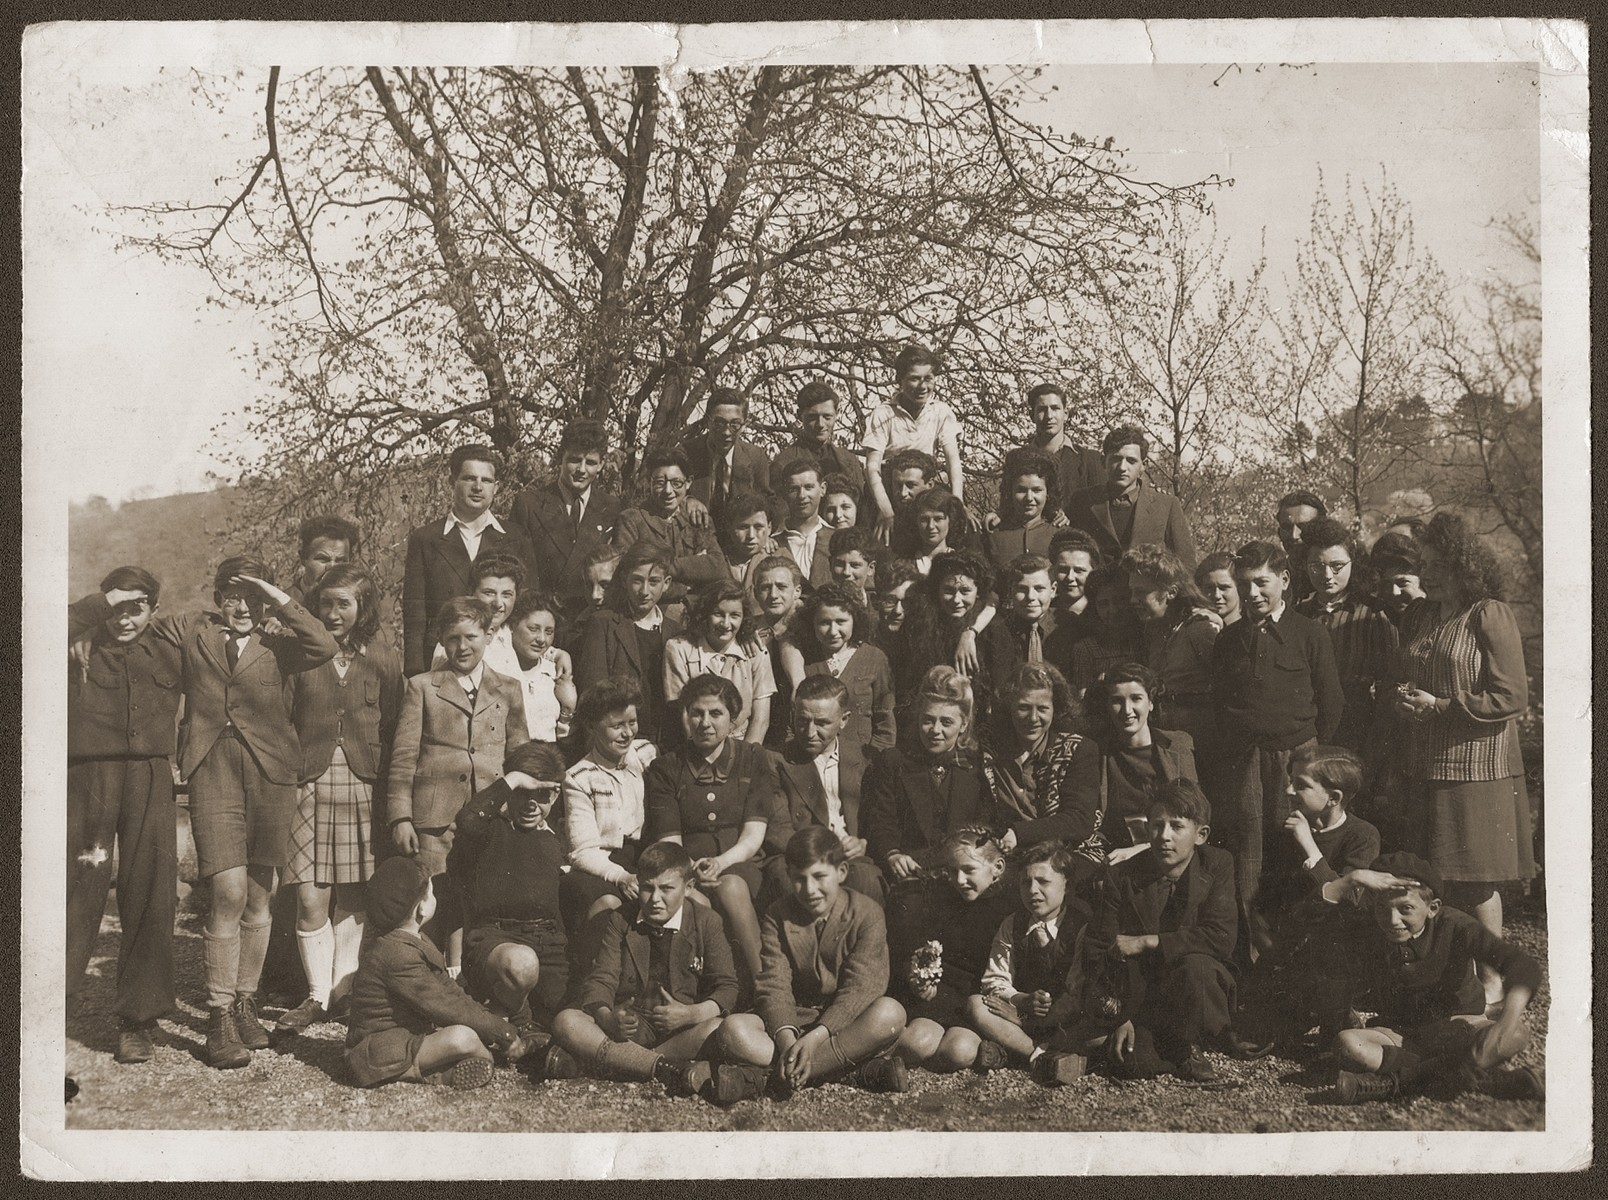 Group portrait of Jewish youth and staff from the OSE children's homes at Collognes and Le Tremplin.    Among those pictured are the directors of the Collonges home, Mr. and Mrs. Hannau (second row, center) and Yvonne Rocque, director of Le Tremplin (second from the right).